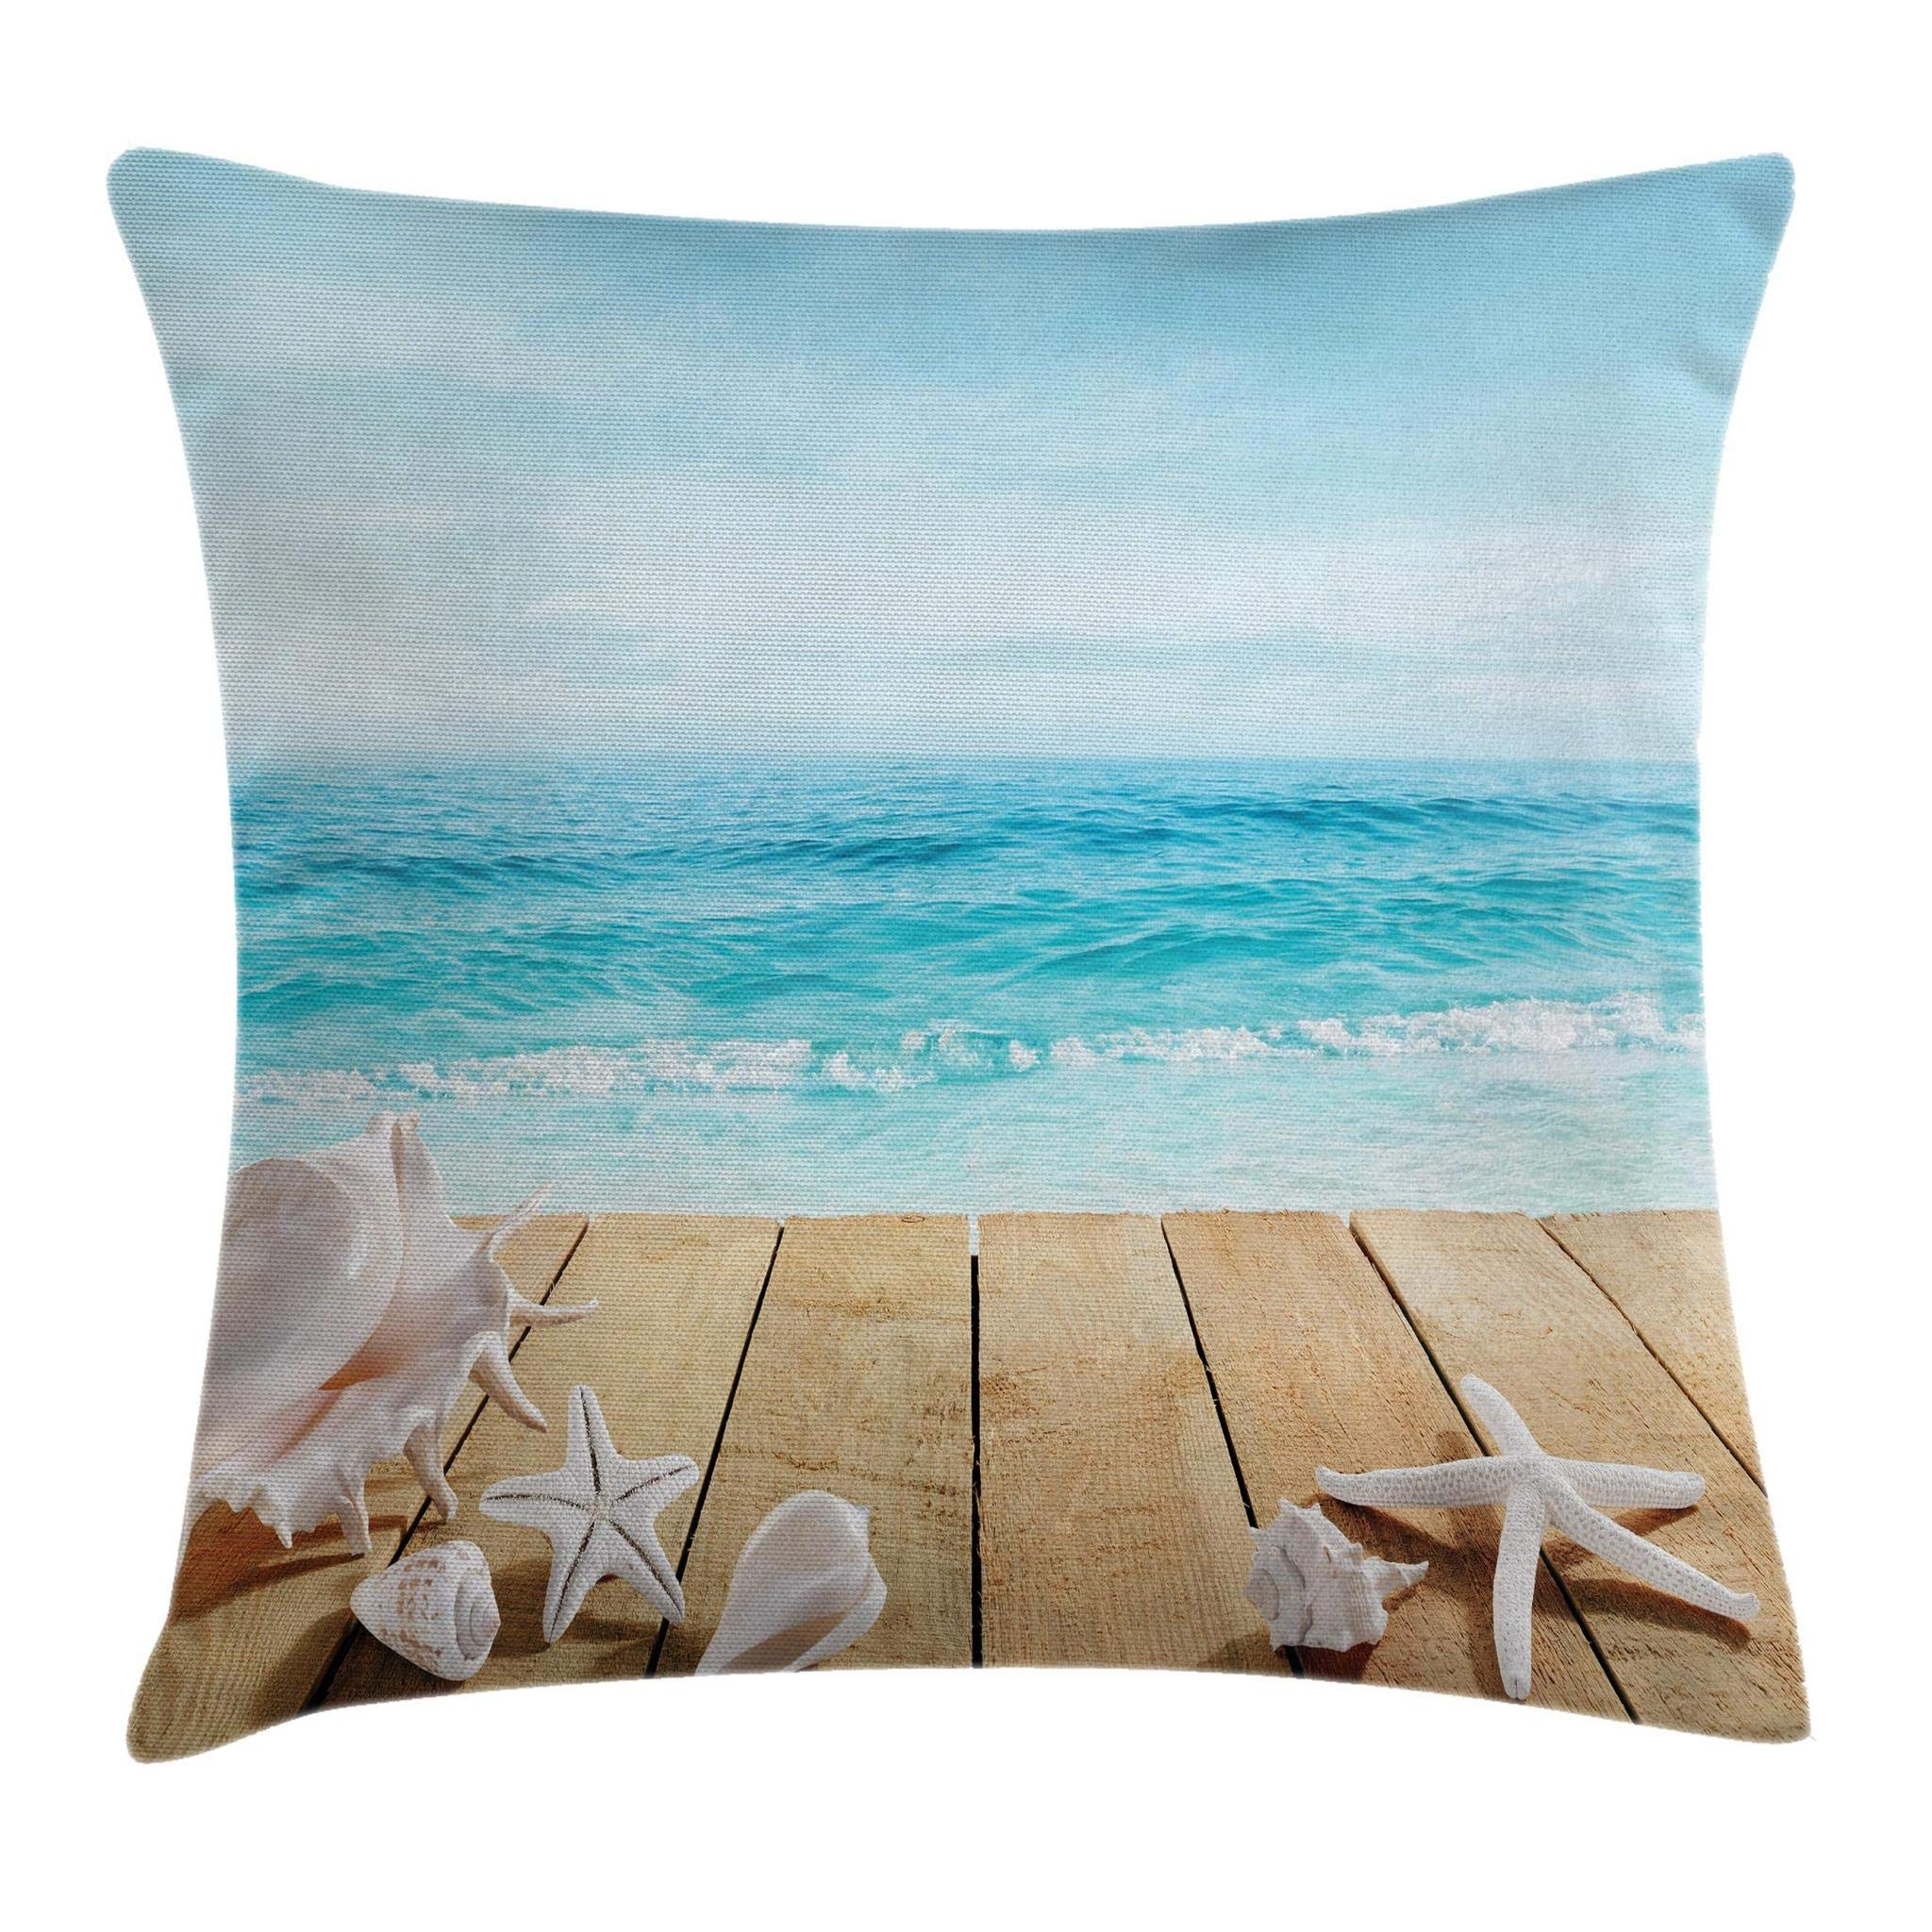 Ambesonne Seashells Throw Pillow Cushion Cover, Wooden Boardwald with Seashells Sunshine Vacations Beach Theme, Decorative Square Accent Pillow Case, 18'' X 18'', Blue Beige by Ambesonne